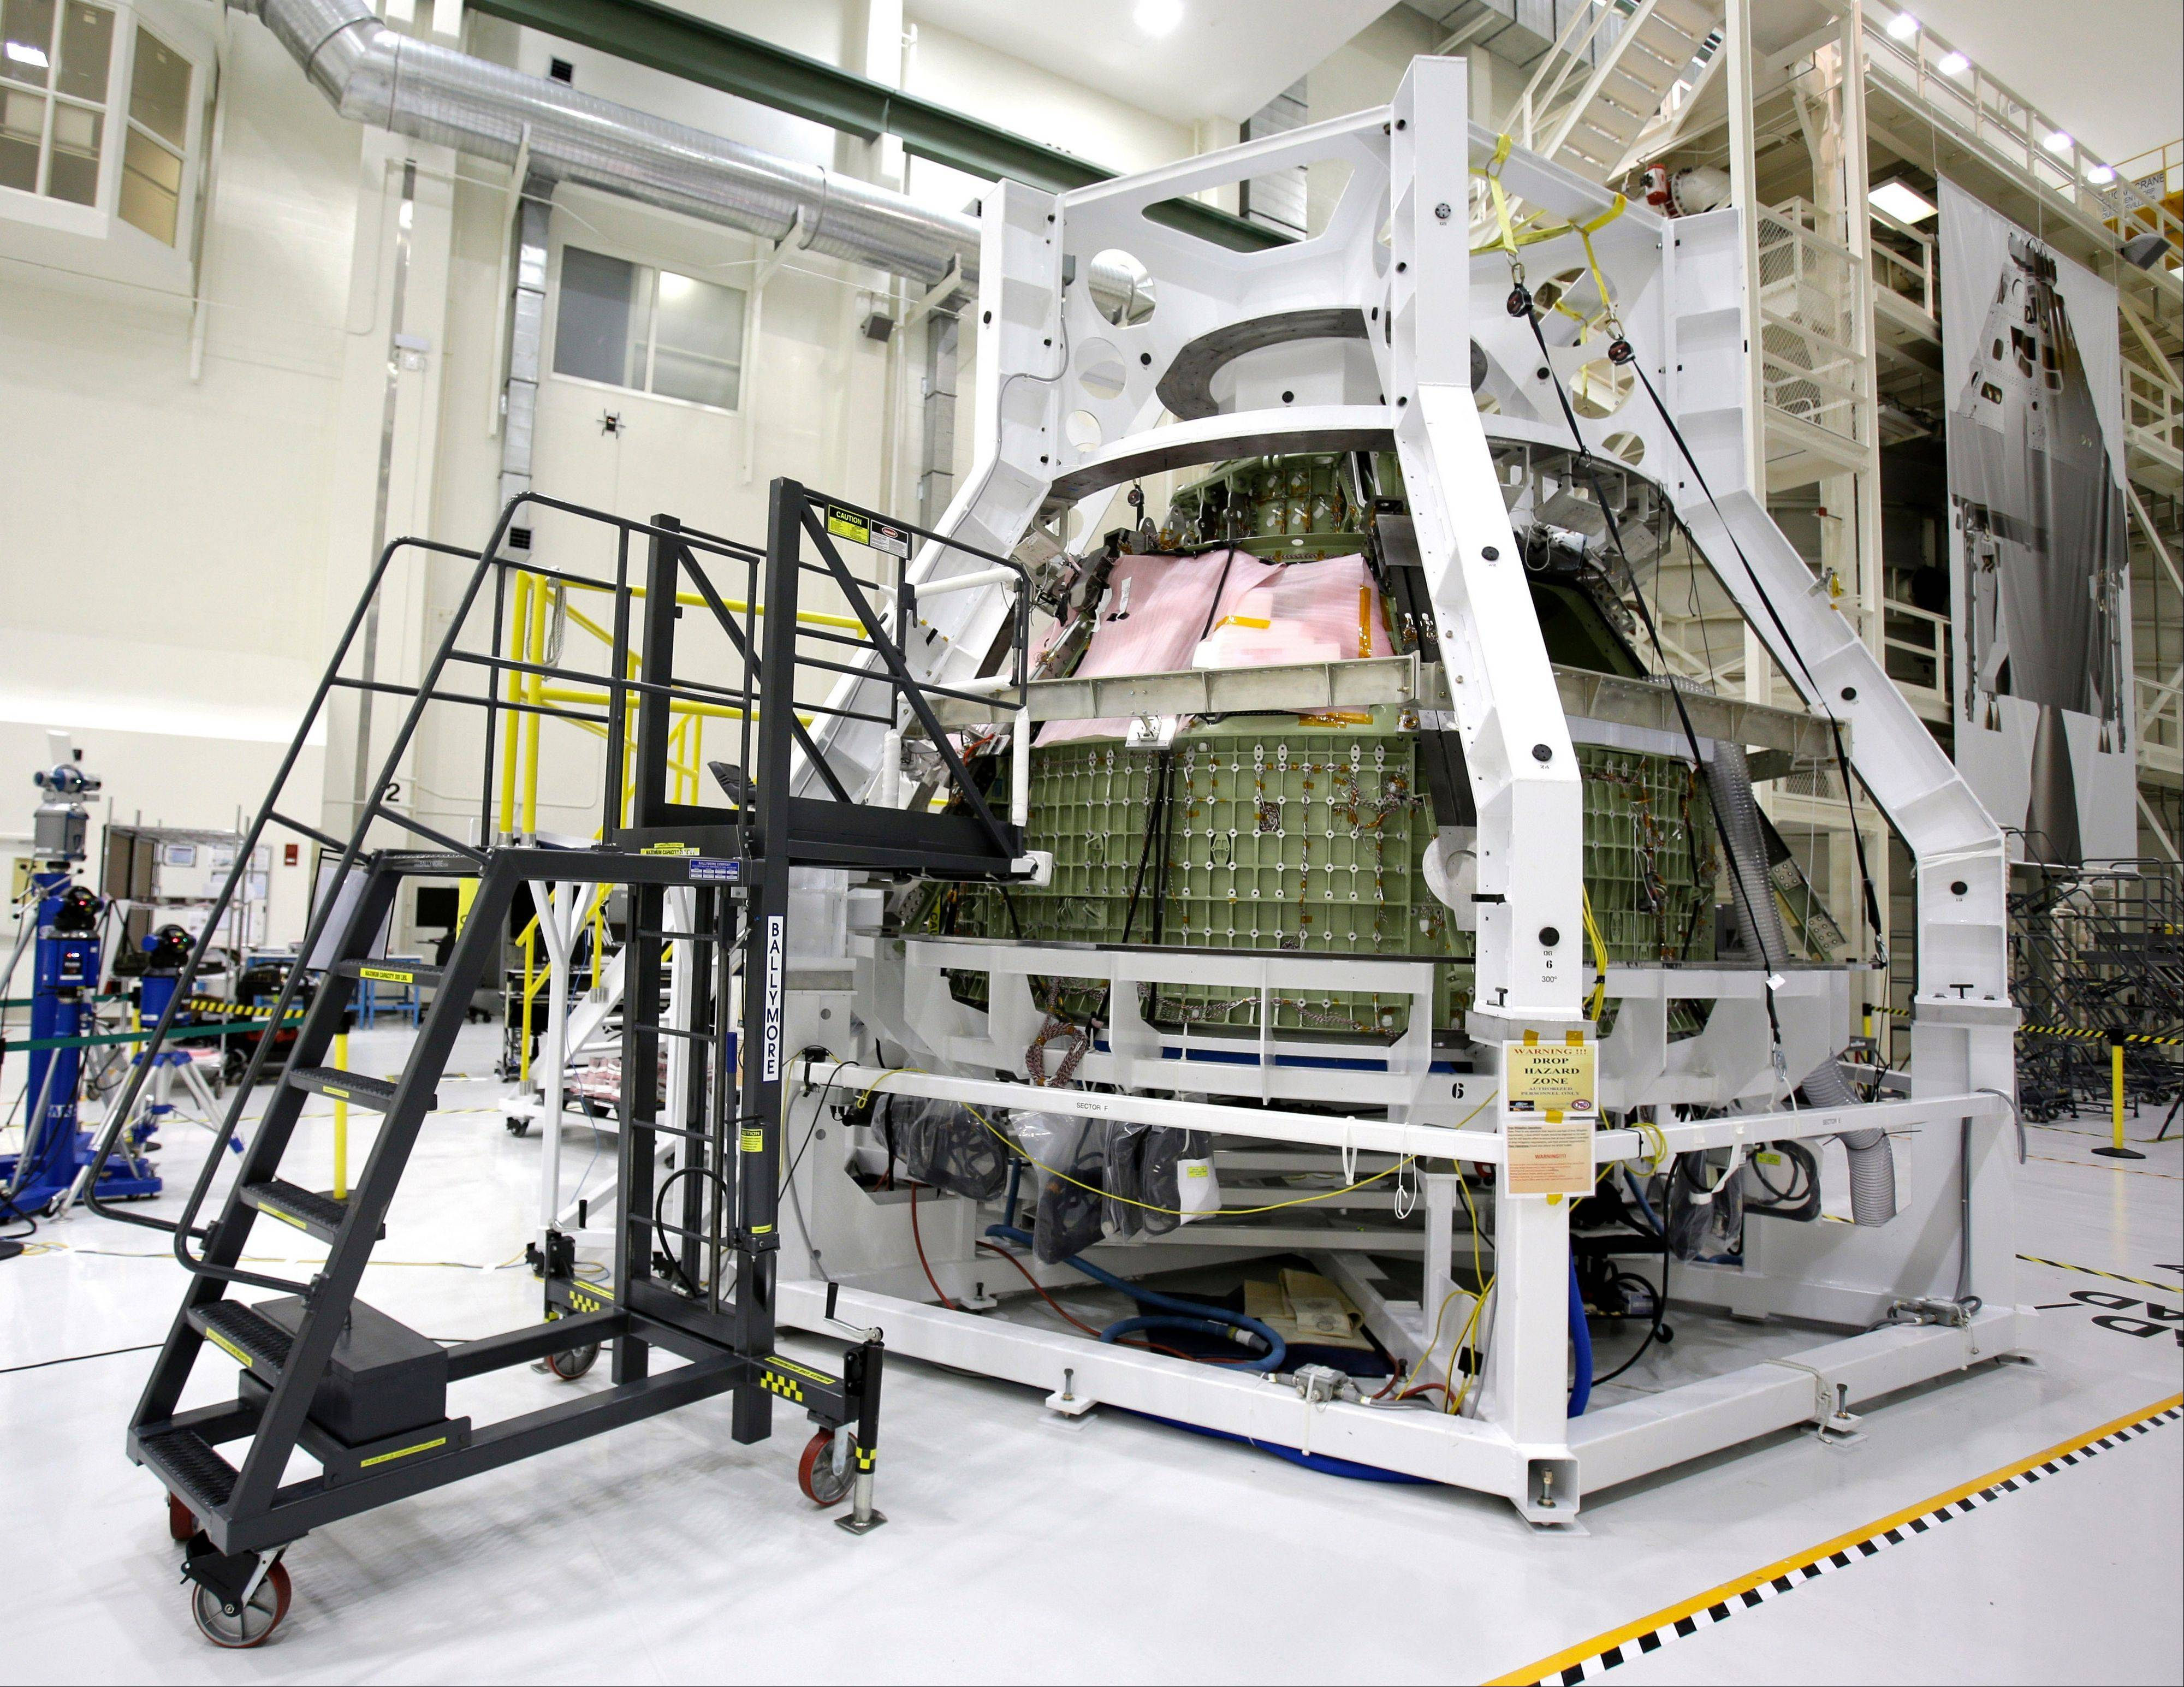 Associated Press/Jan. 13, 2013The Orion Exploration Flight Test 1crew module sits in the Operations and Checkout building during a media tour at the Kennedy Space Center in Cape Canaveral, Fla.